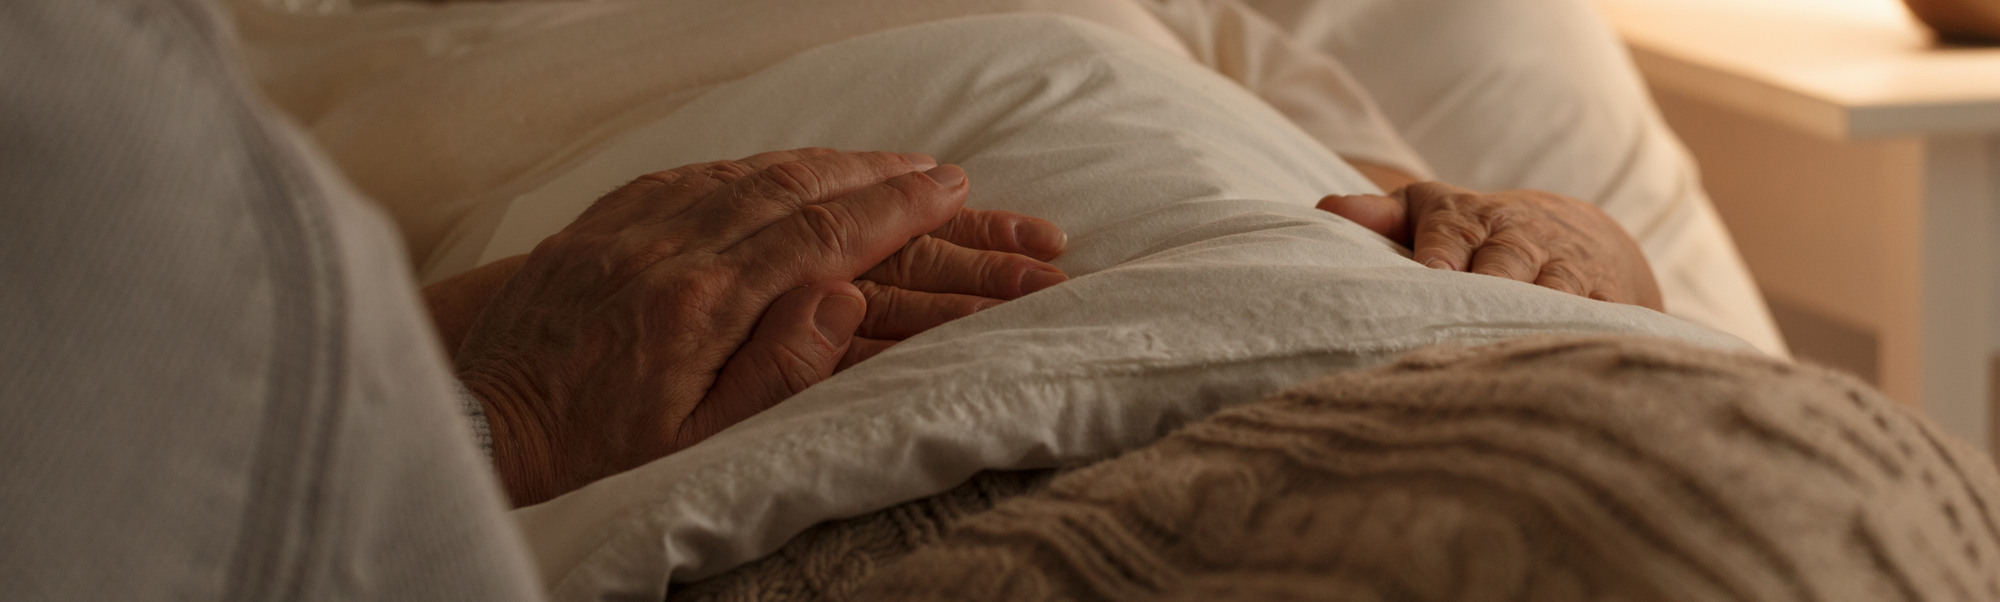 Couple Care! How A Special Double Care Bed Helps Couples Enjoy A Good Night's Sleep – Together